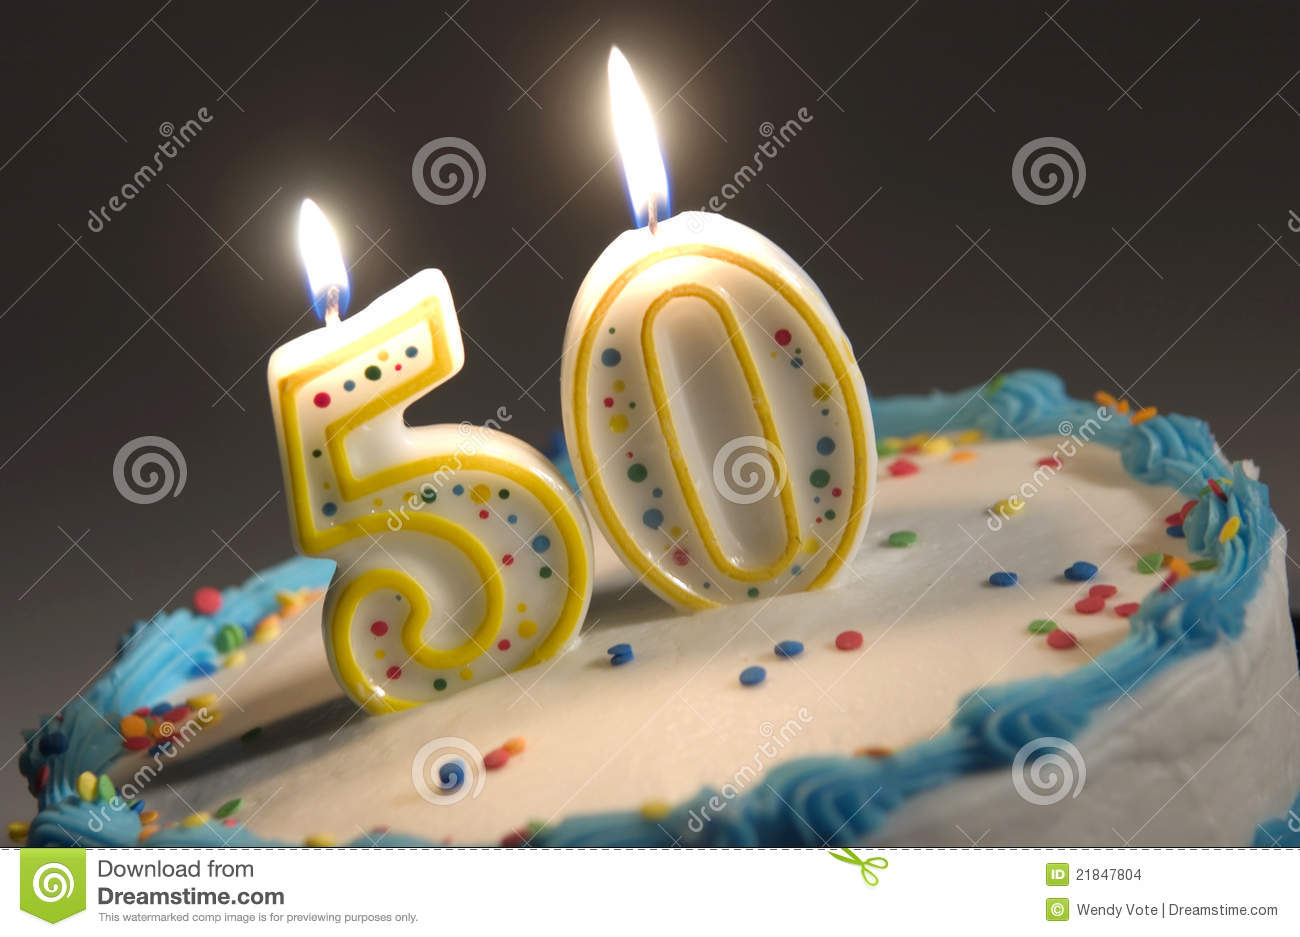 picture of birthday cake with 50 candles ; 50th-birthday-cake-21847804